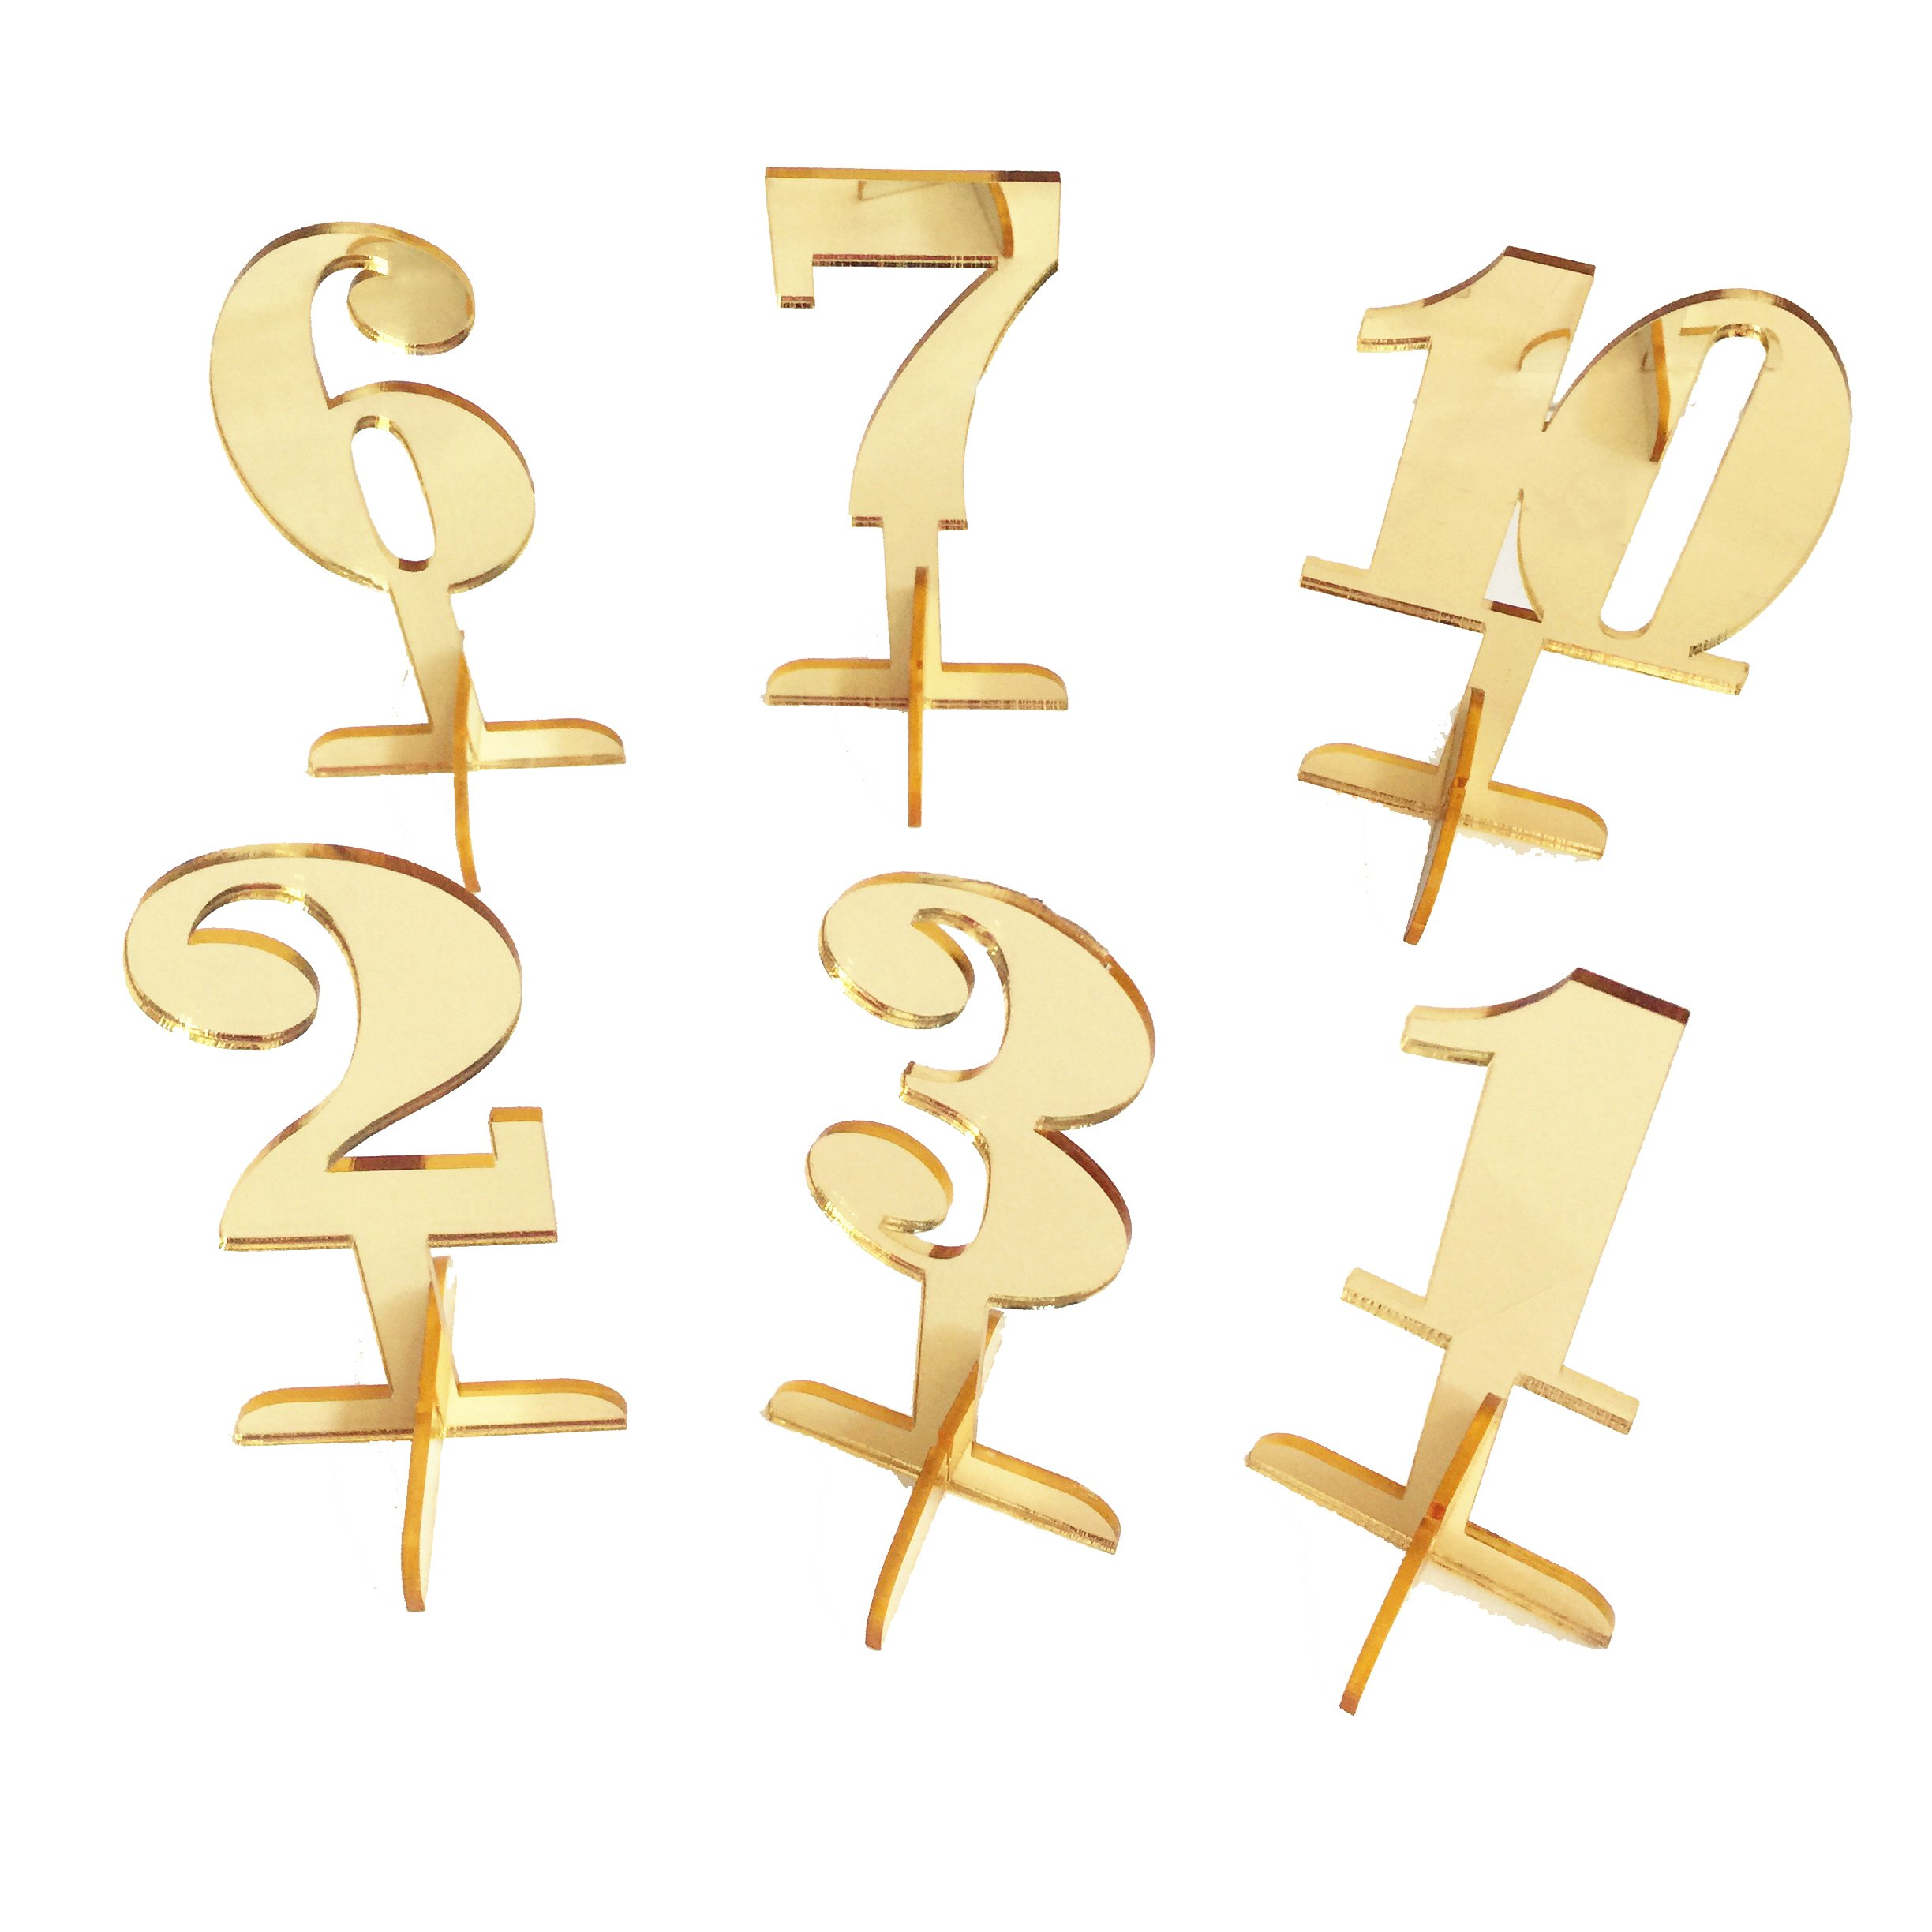 iEventStar Wedding Table Number Numbers with Holder Base for Wedding Table Events (Mirror Gold, 10)